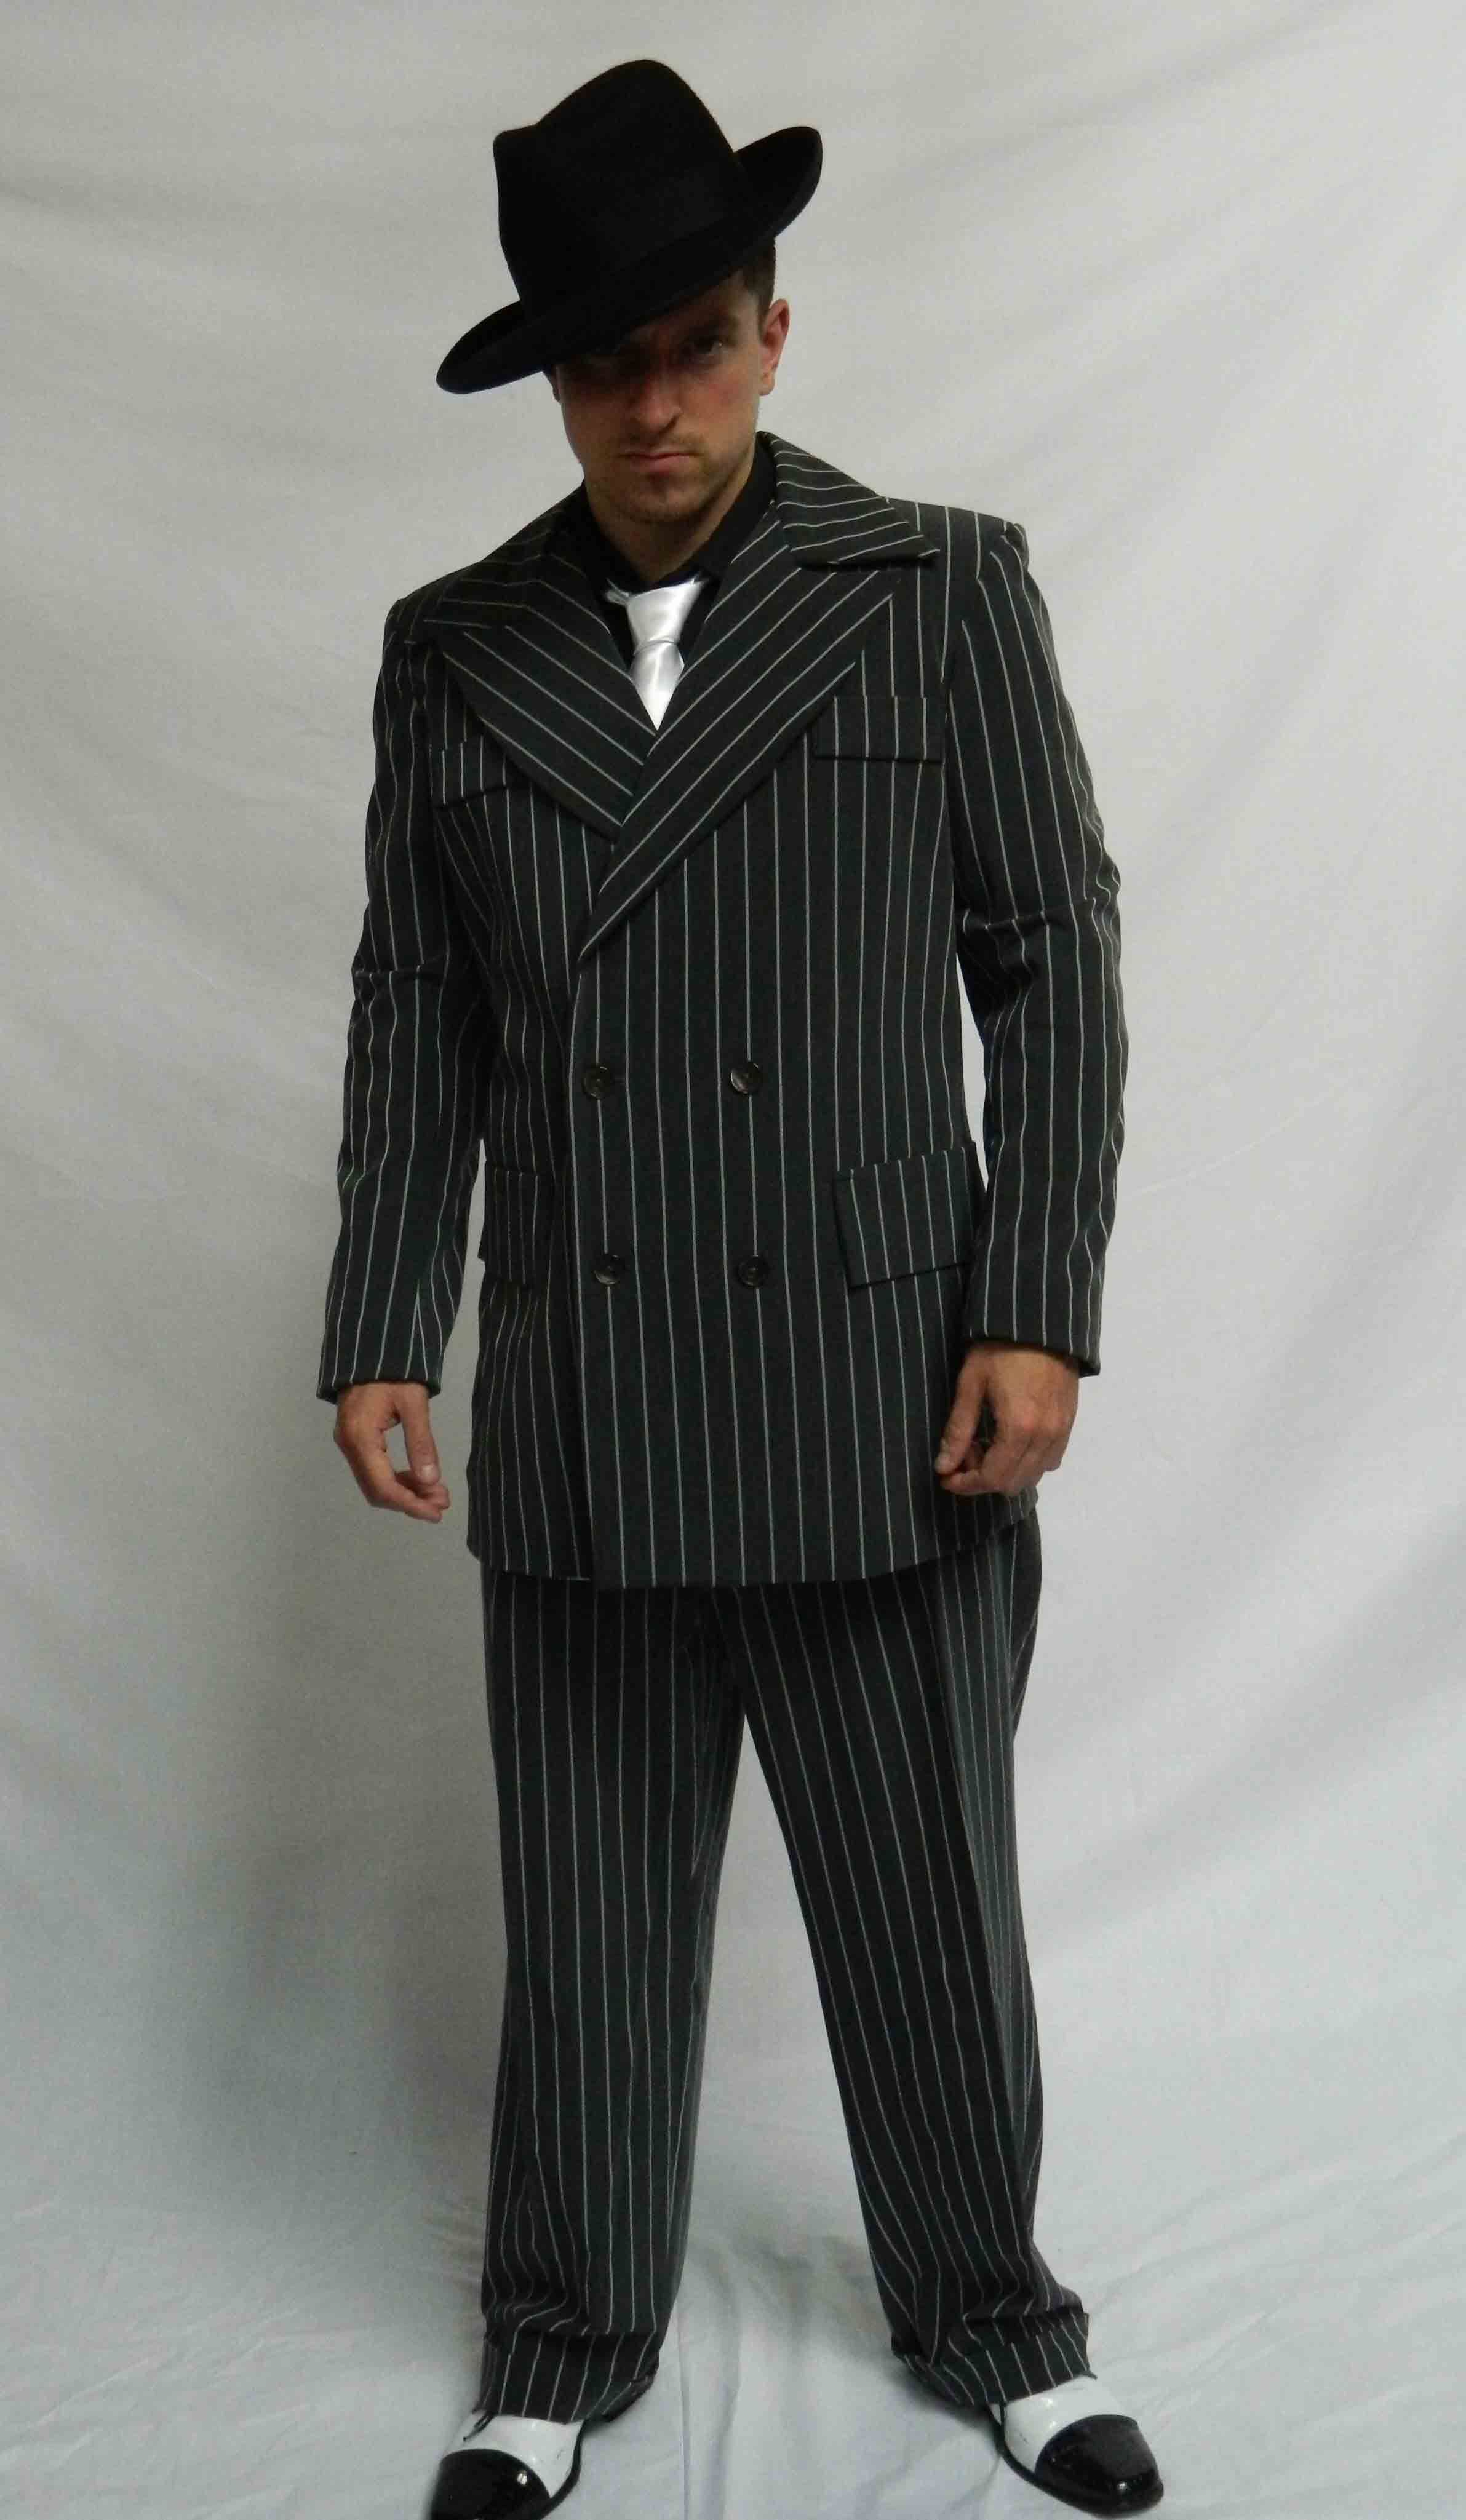 Theatrical quality 1920s suit hire